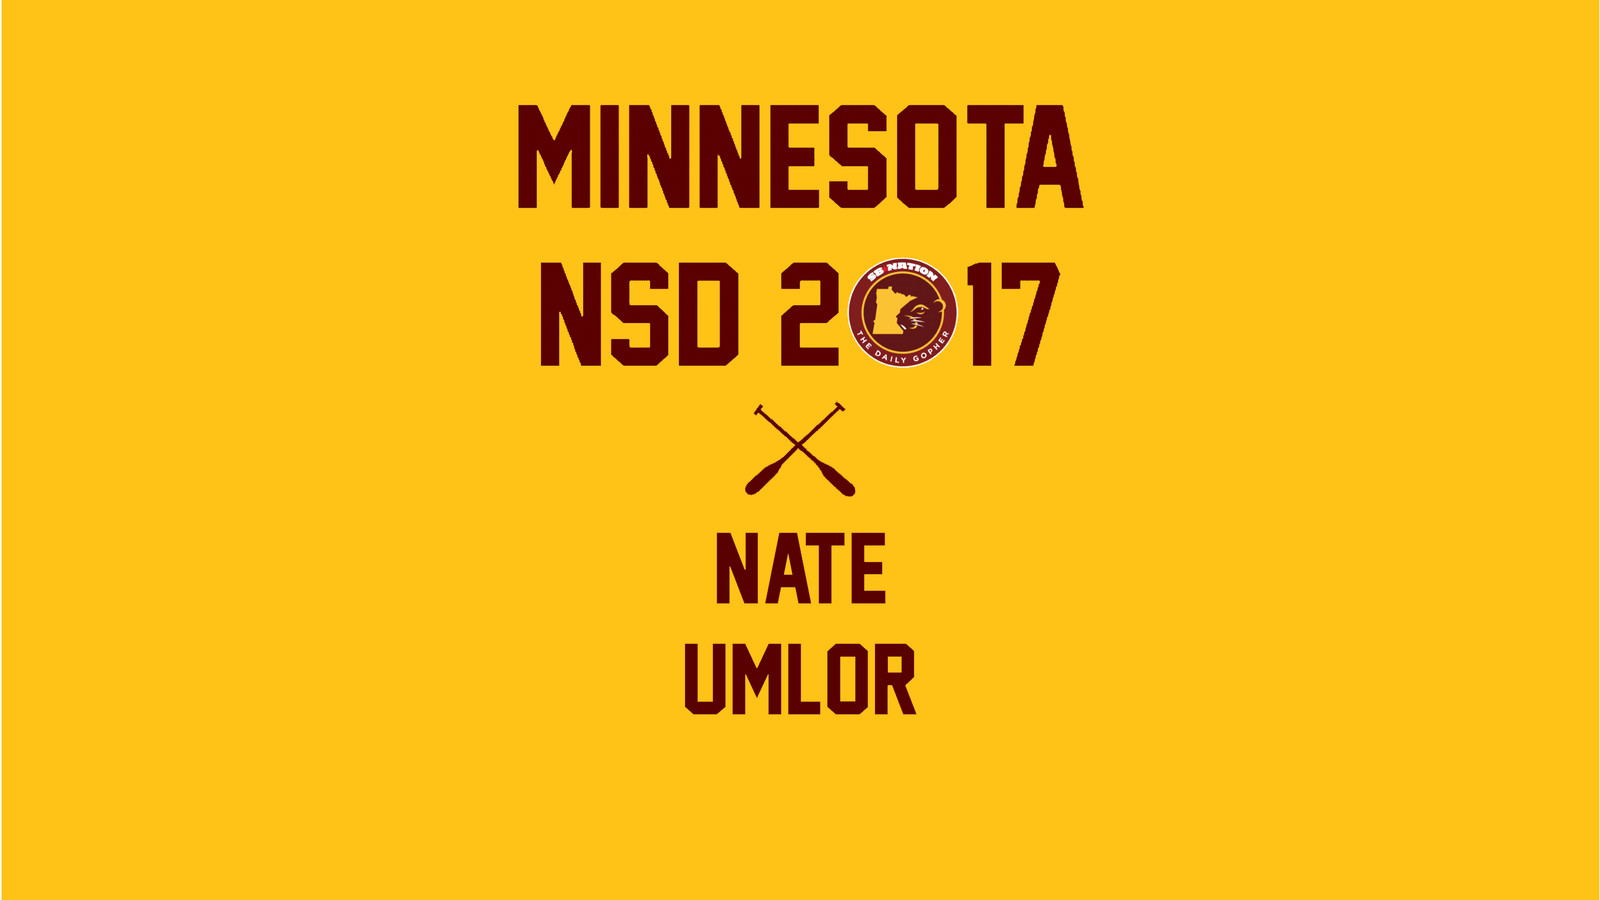 Nsd_2017_players_nate_umlor.0